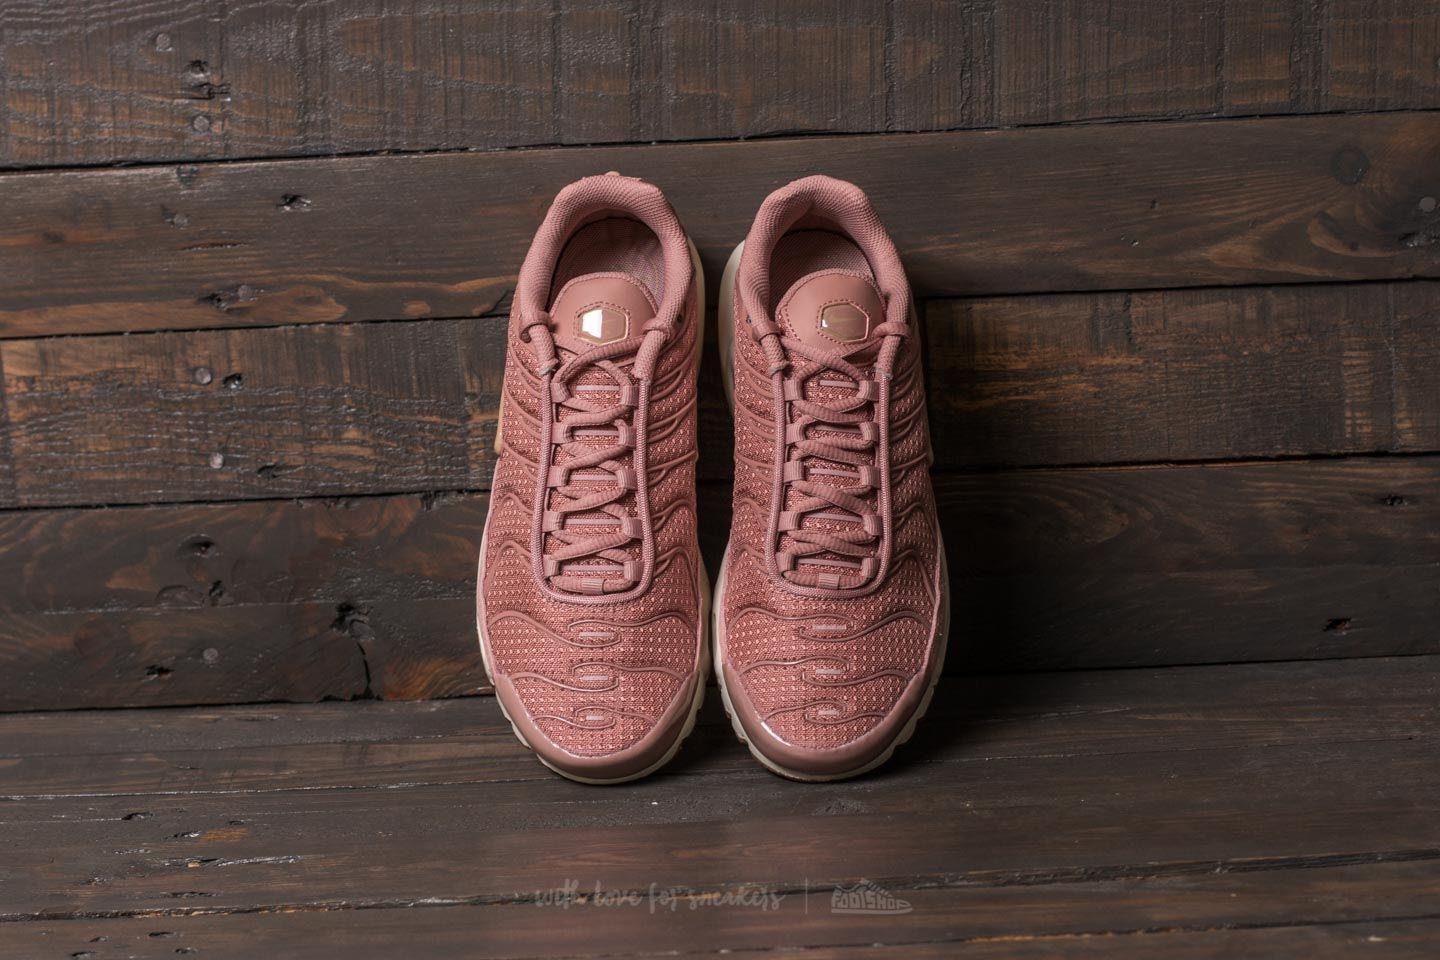 competitive price 5530c 407be Nike Wmns Air Max Plus Particle Pink/ Mushroom-sail